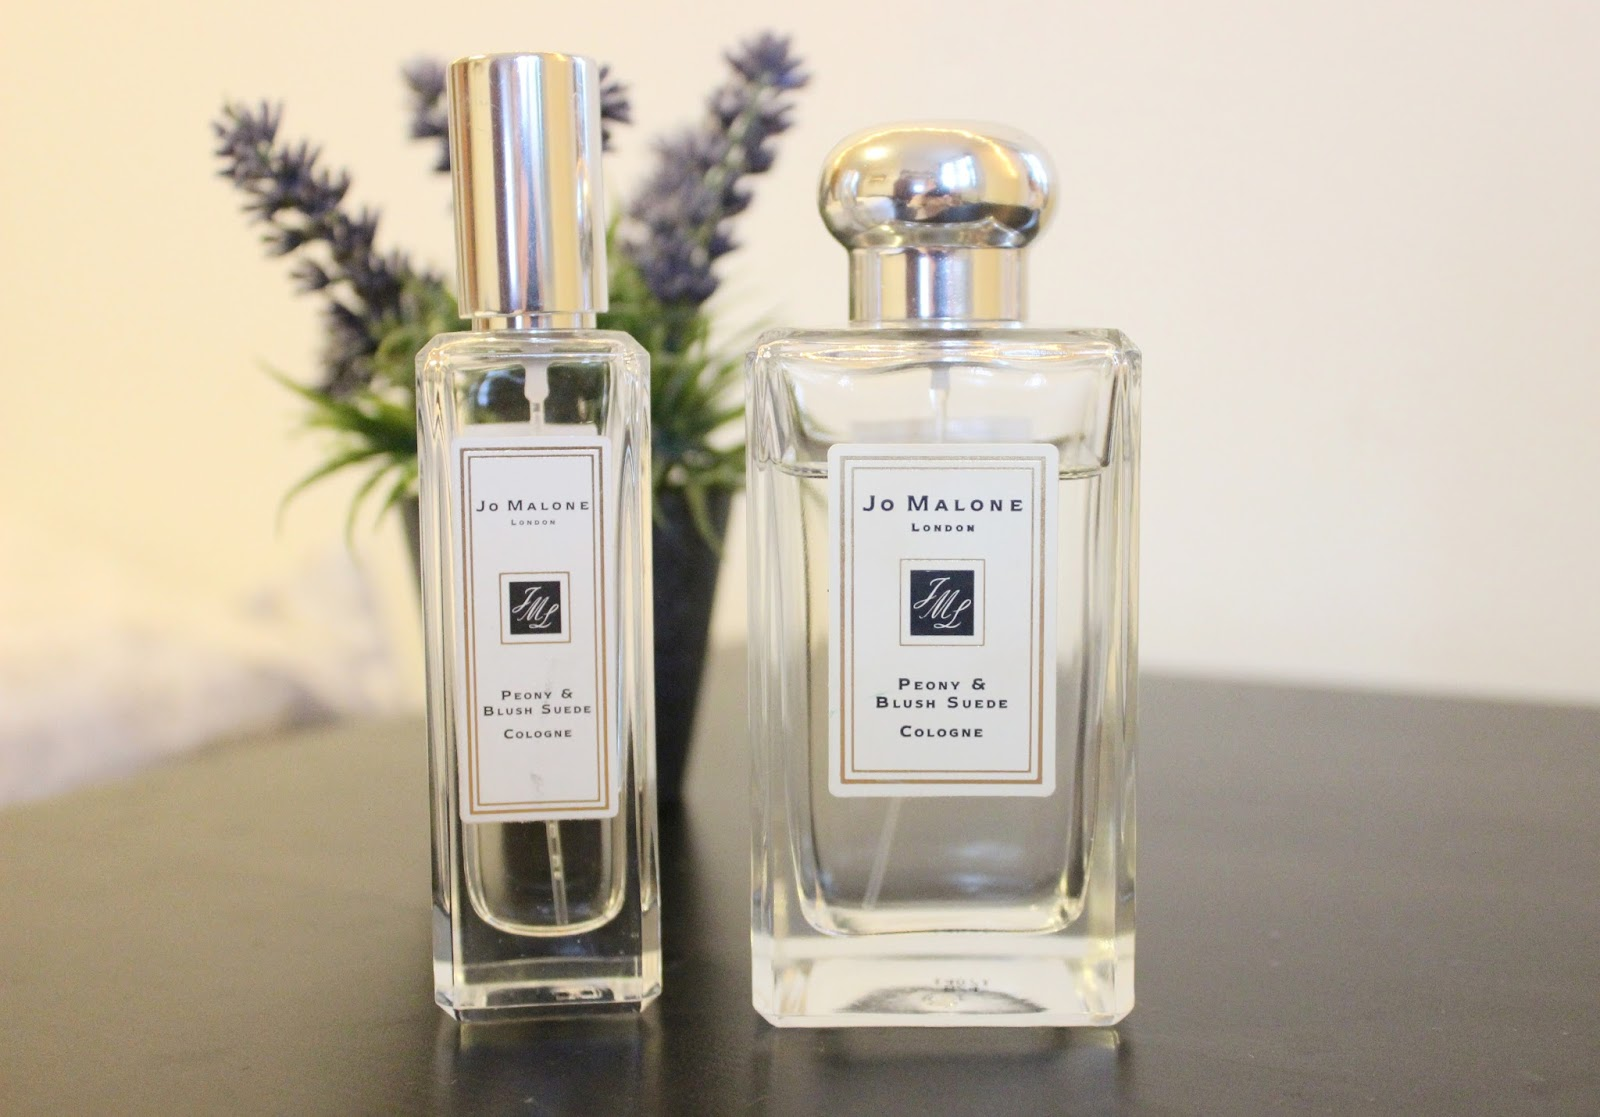 Jo Malone peony and blush suede cologne perfume